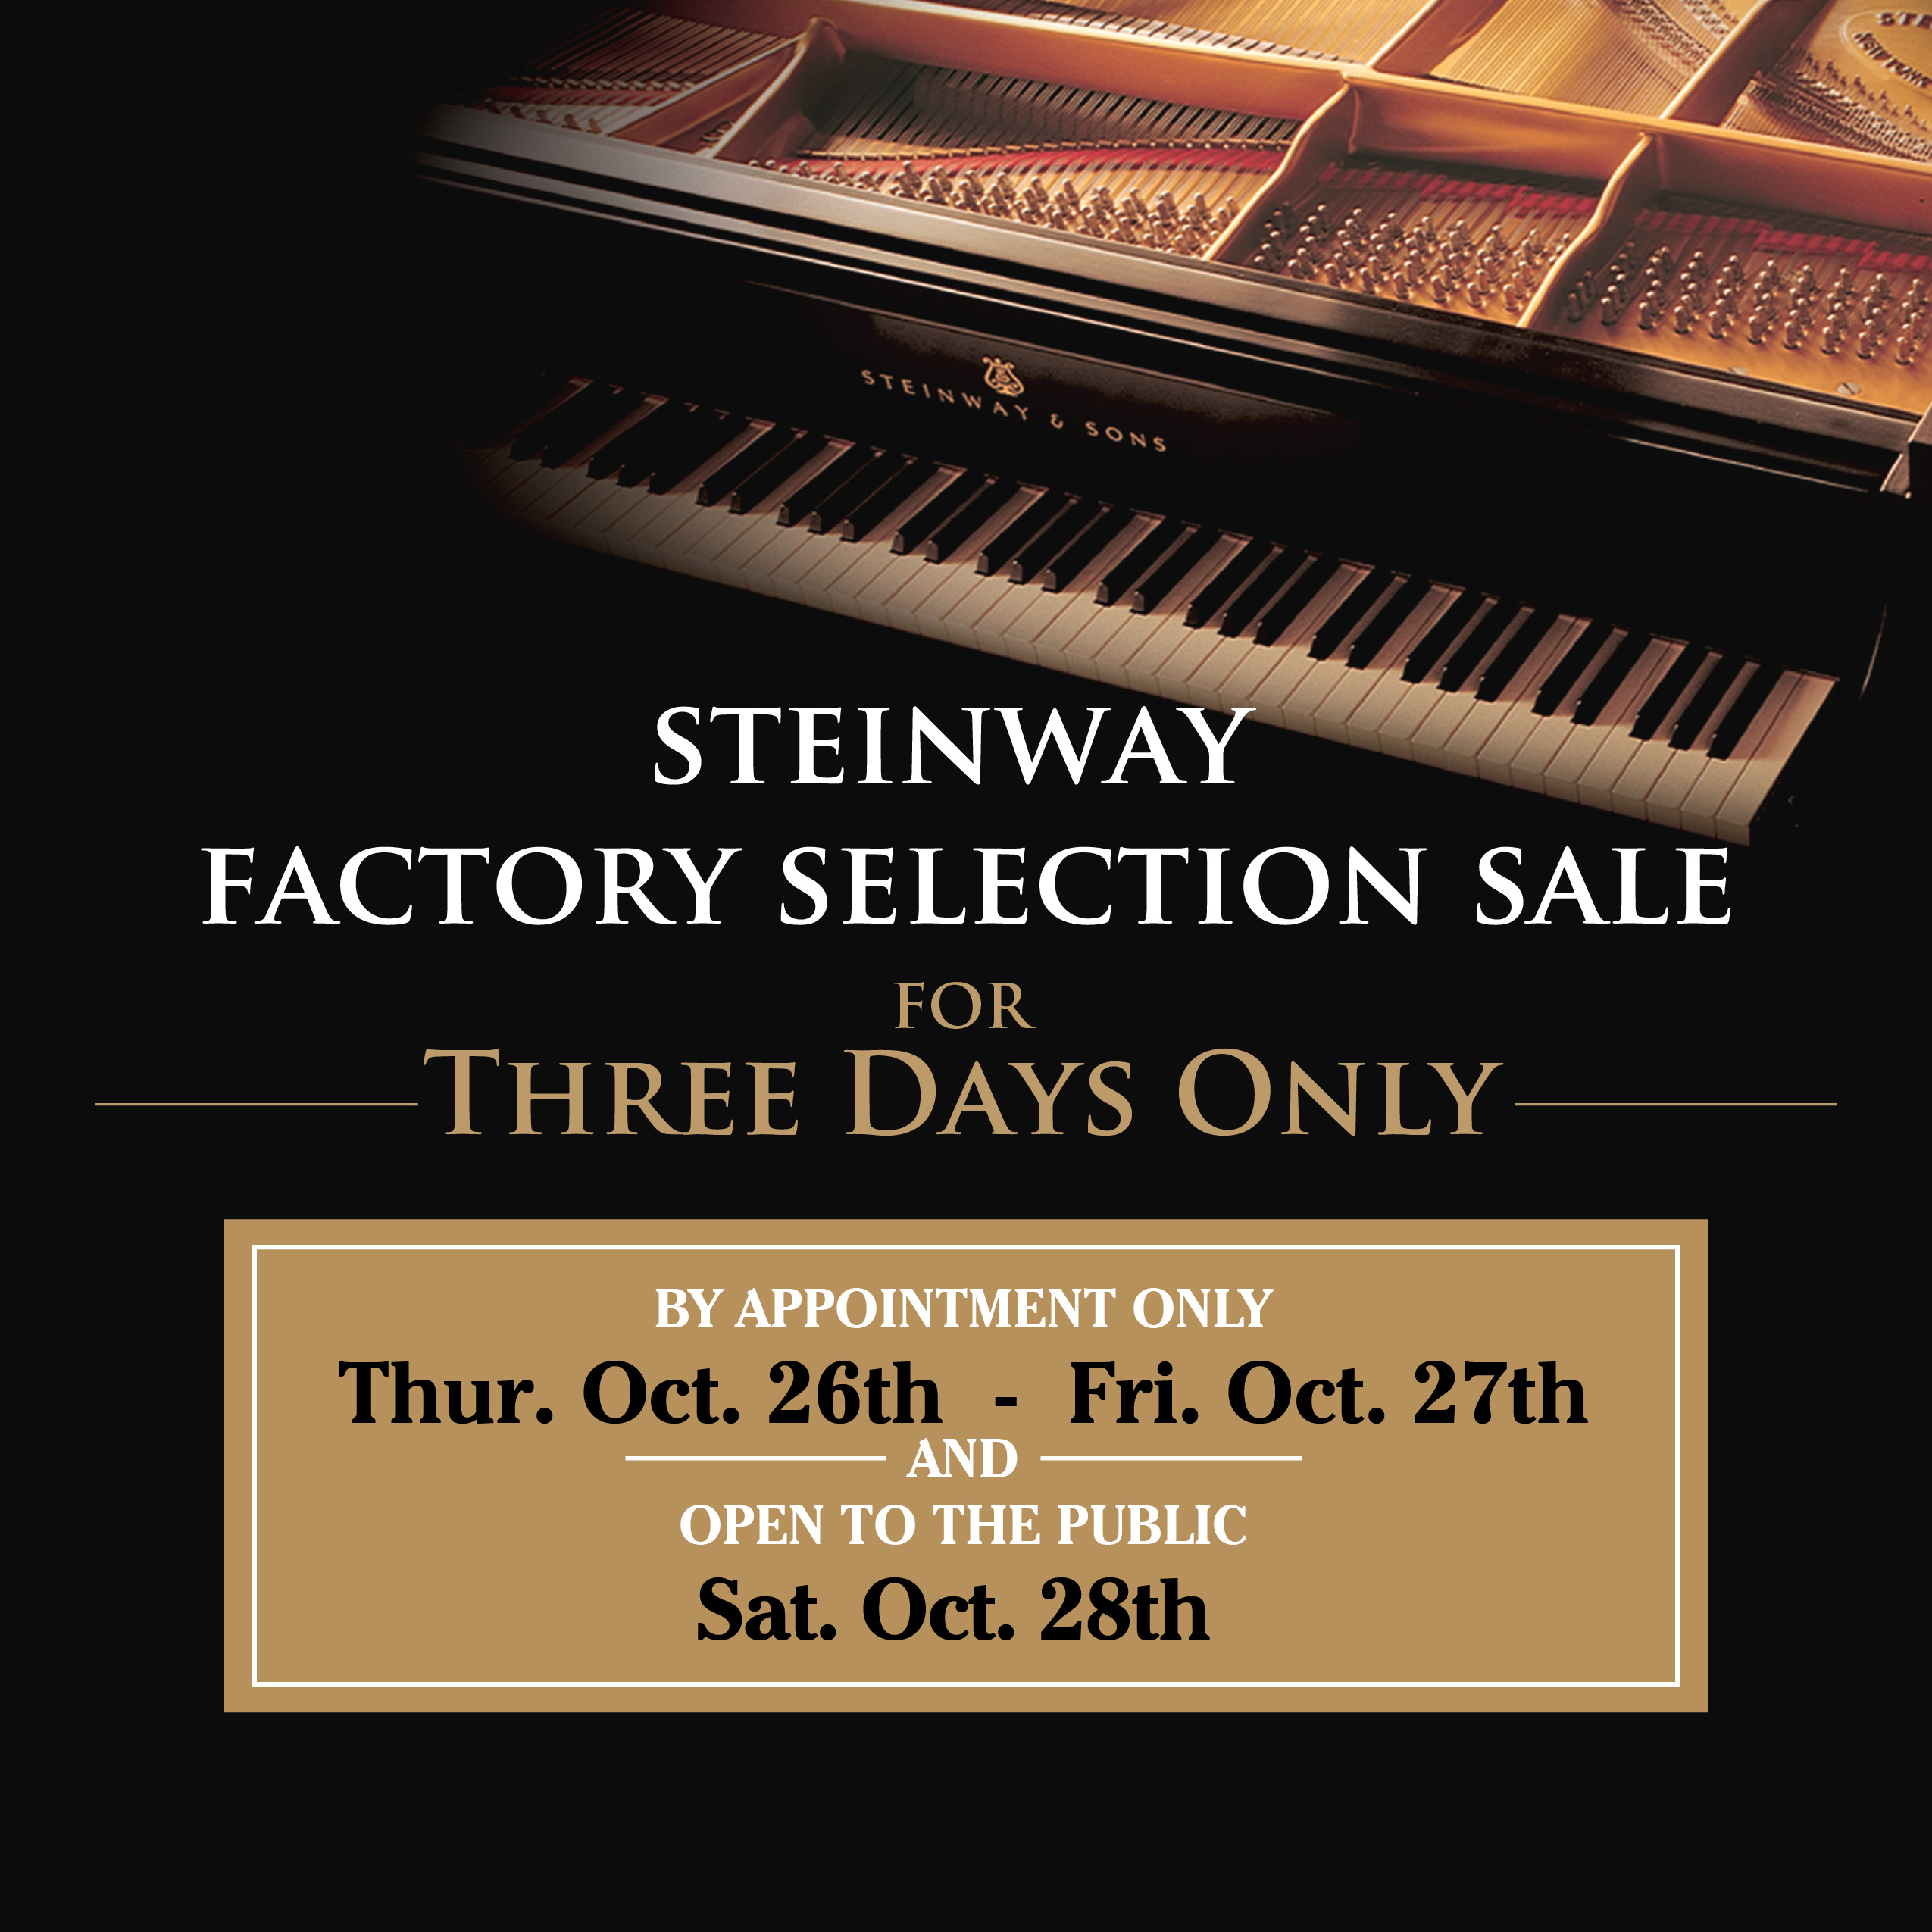 /news/2017/steinway-factory-sale-2017